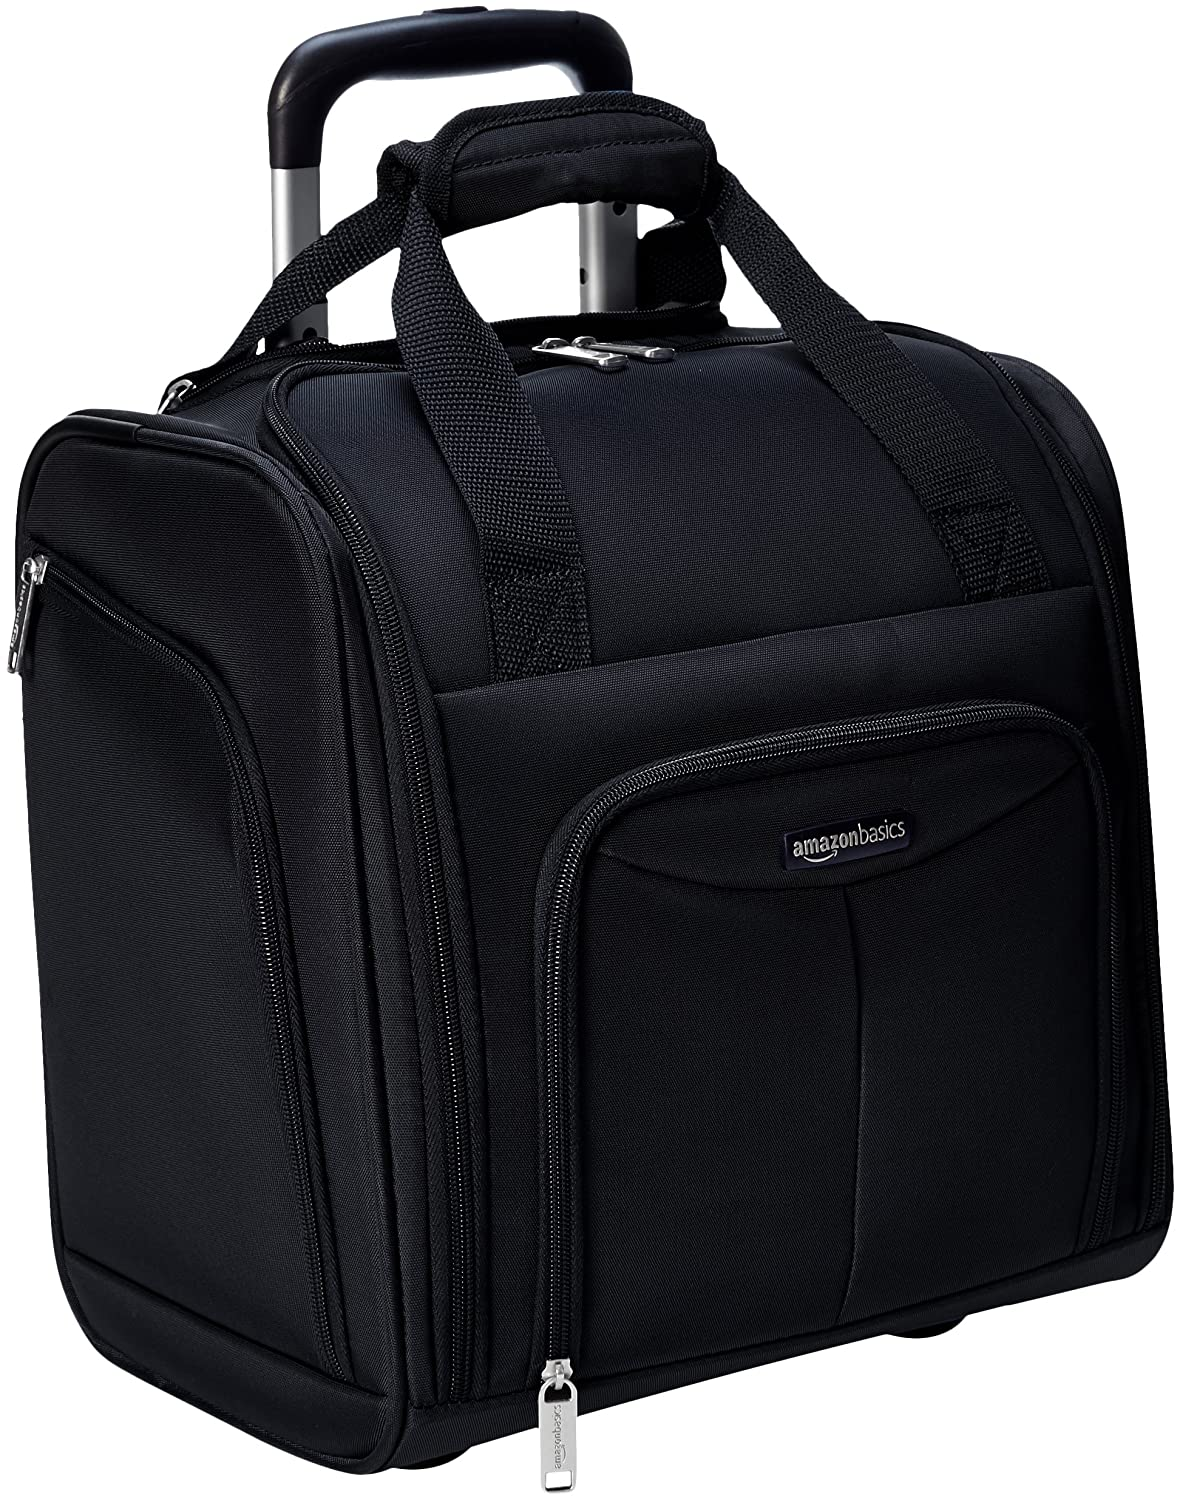 Top 9 Amazon Basic Wheeled Laptop Bag